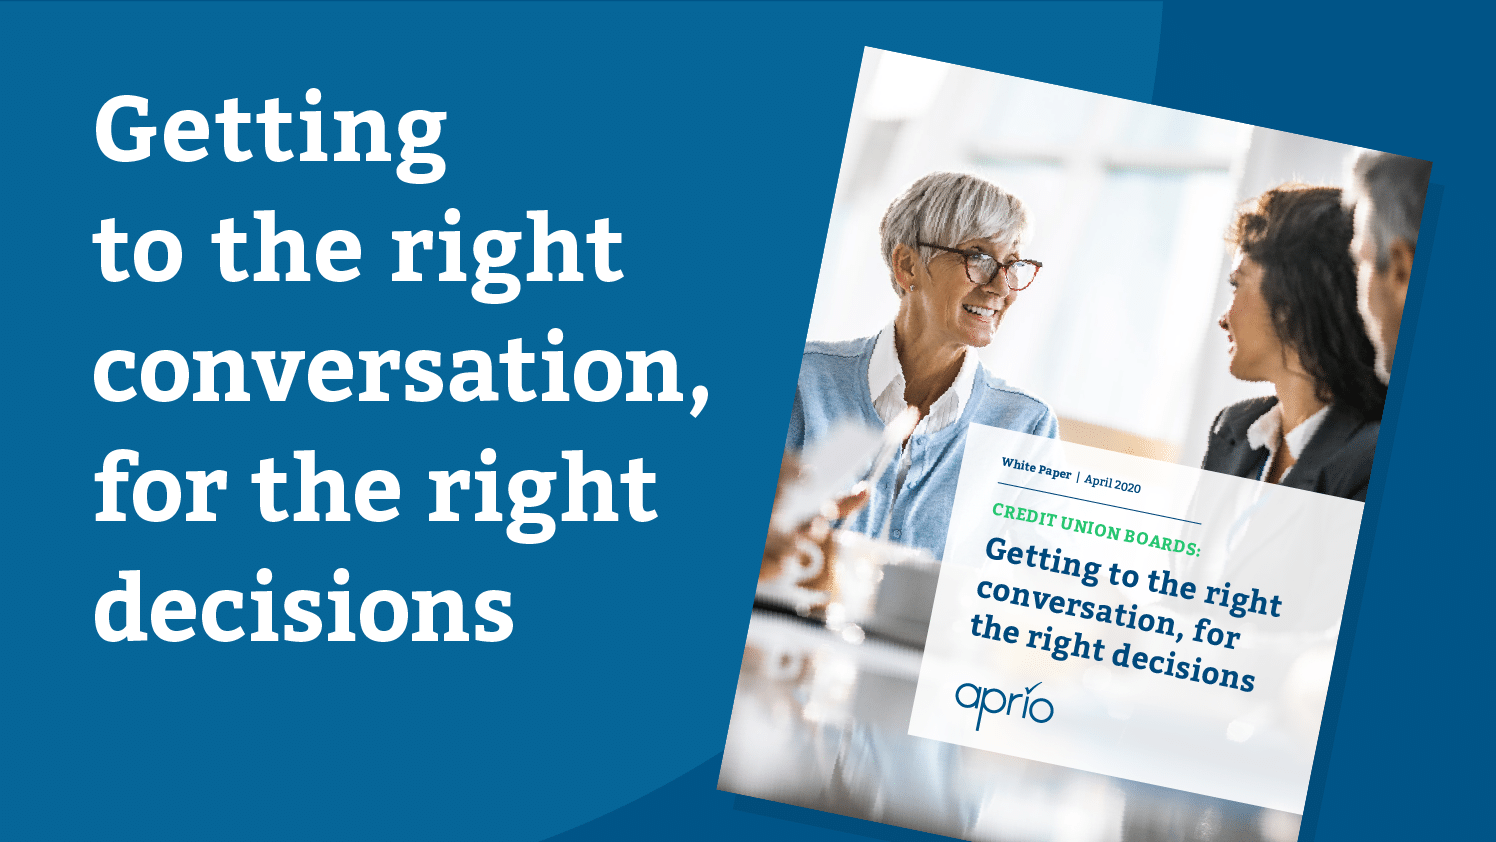 White Paper: Getting to the right conversation, for the right decisions